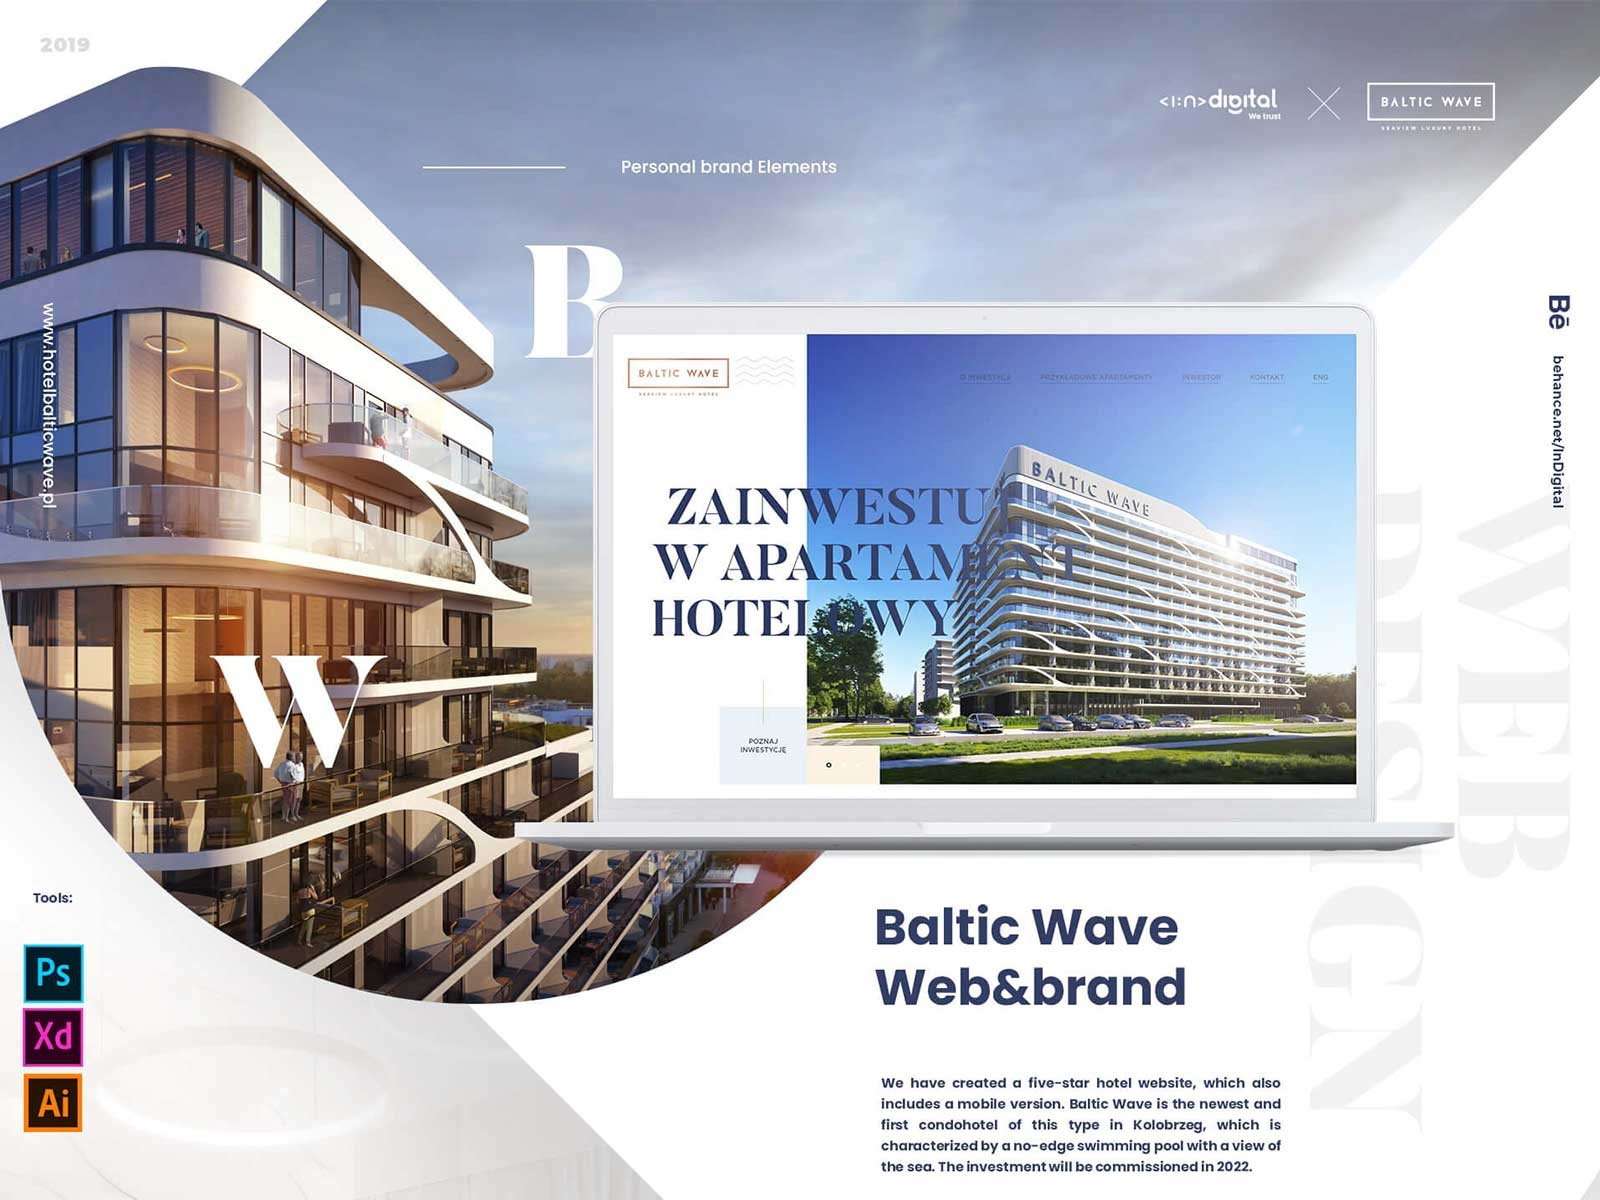 Hotel Baltic Wave Case Study By Mariusz Mitkow On Dribbble